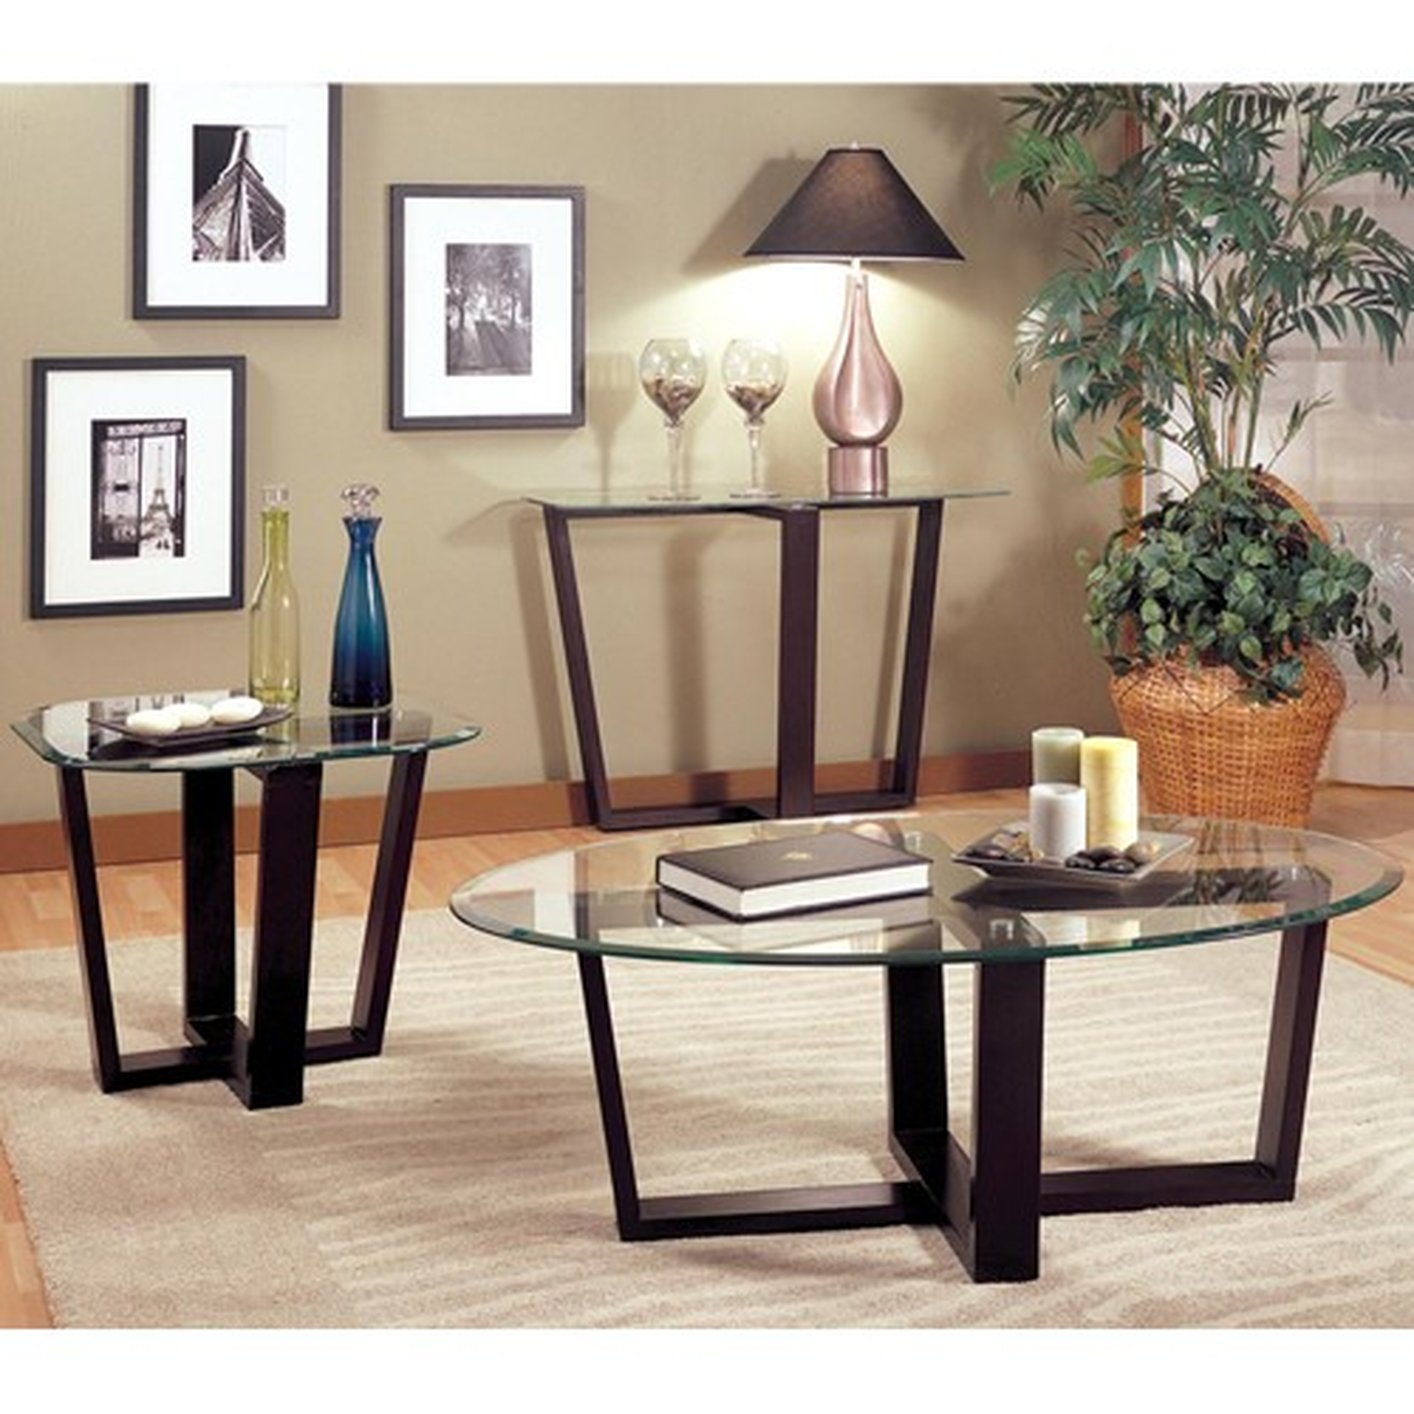 Alexis Black Glass Coffee Table Set - Coaster Alexis 700275 Black Glass Coffee Table Set - Steal-A-Sofa